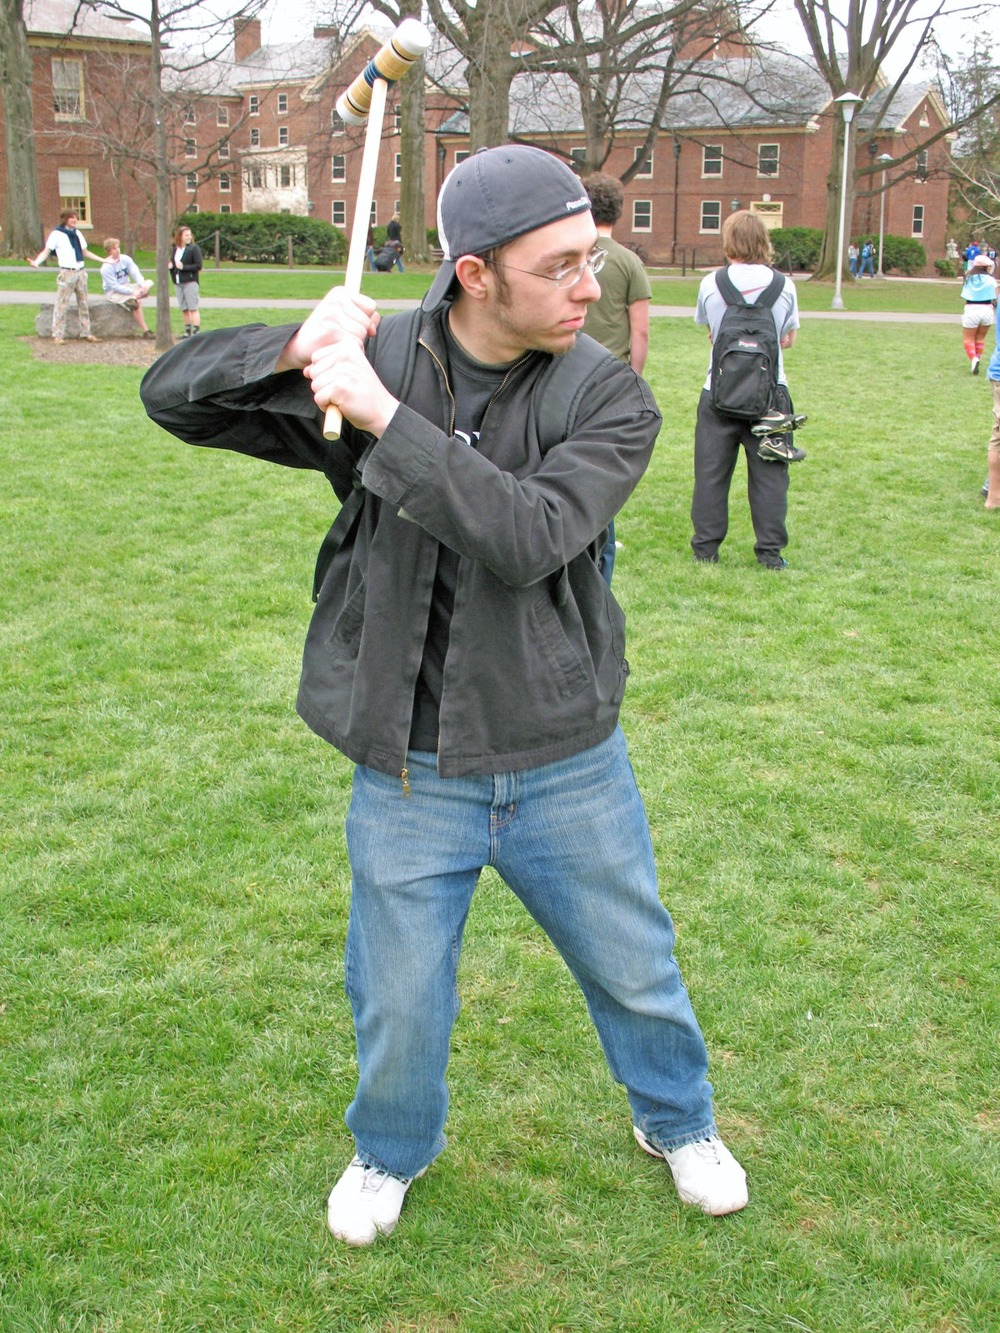 greekweek-apr-07-09.jpg